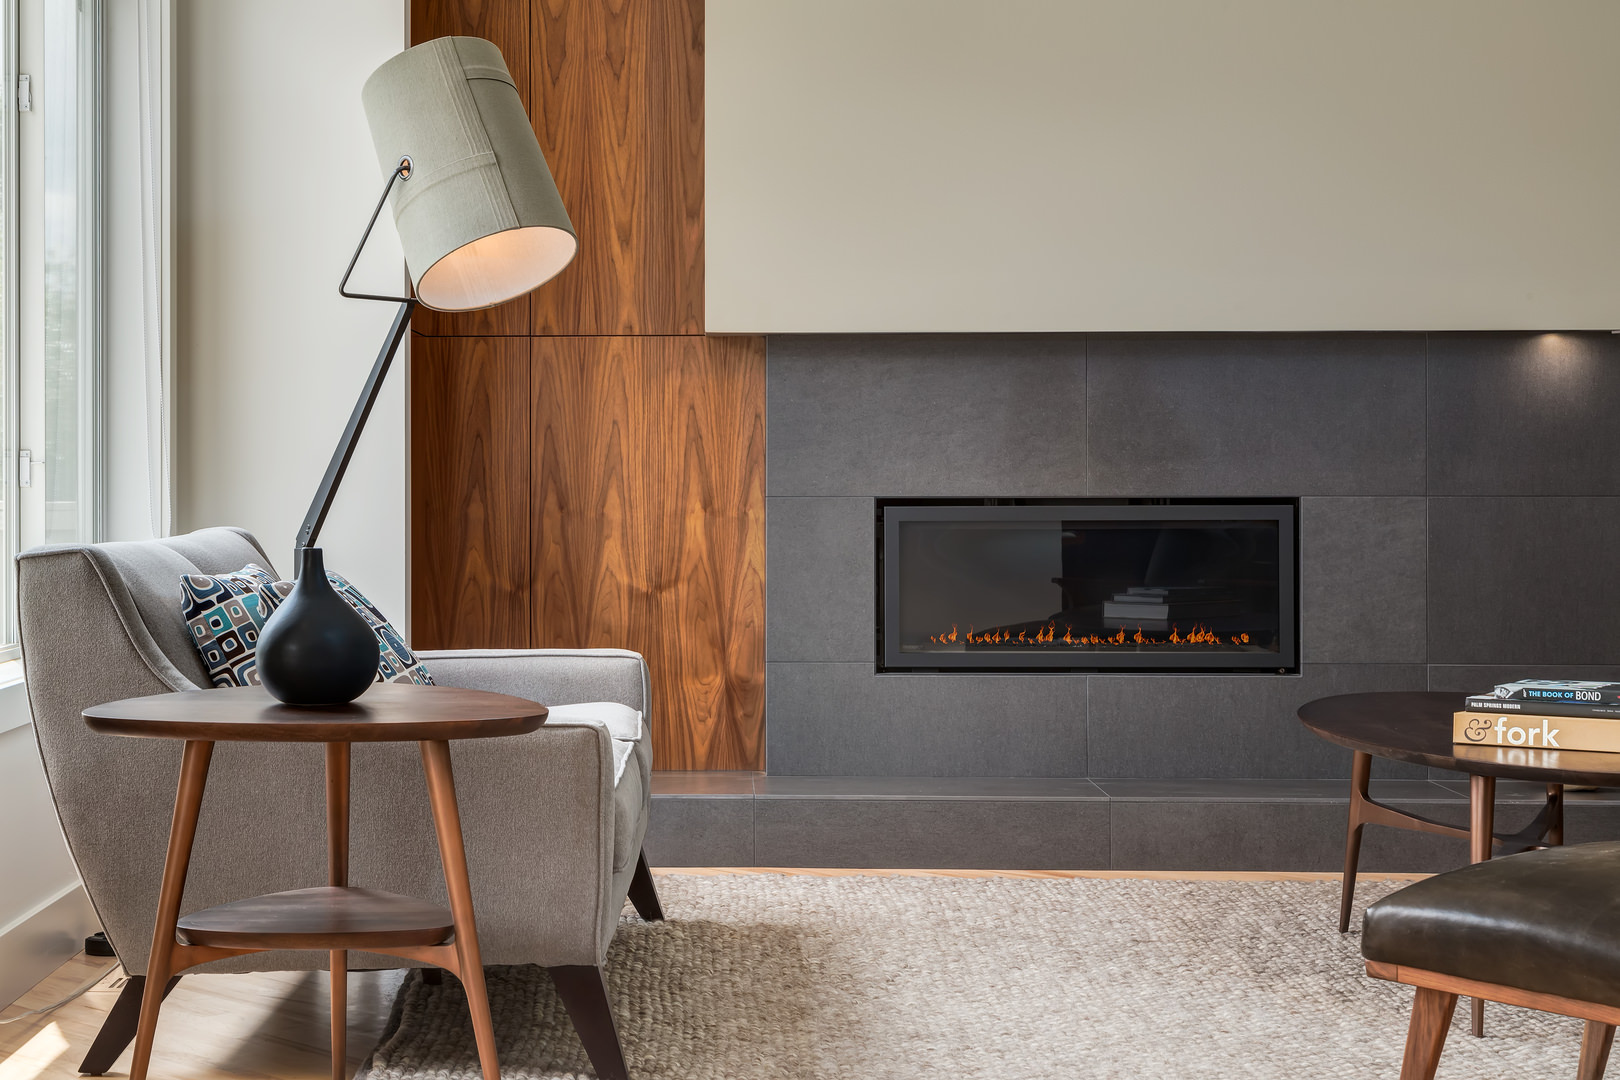 Another brilliant thing about this Deana Lewis design is the fact that the millwork gives the house a clean finish and is the most durable in this case. For example, in the living room you can see another colour added to the scheme which is some place between gray and black.